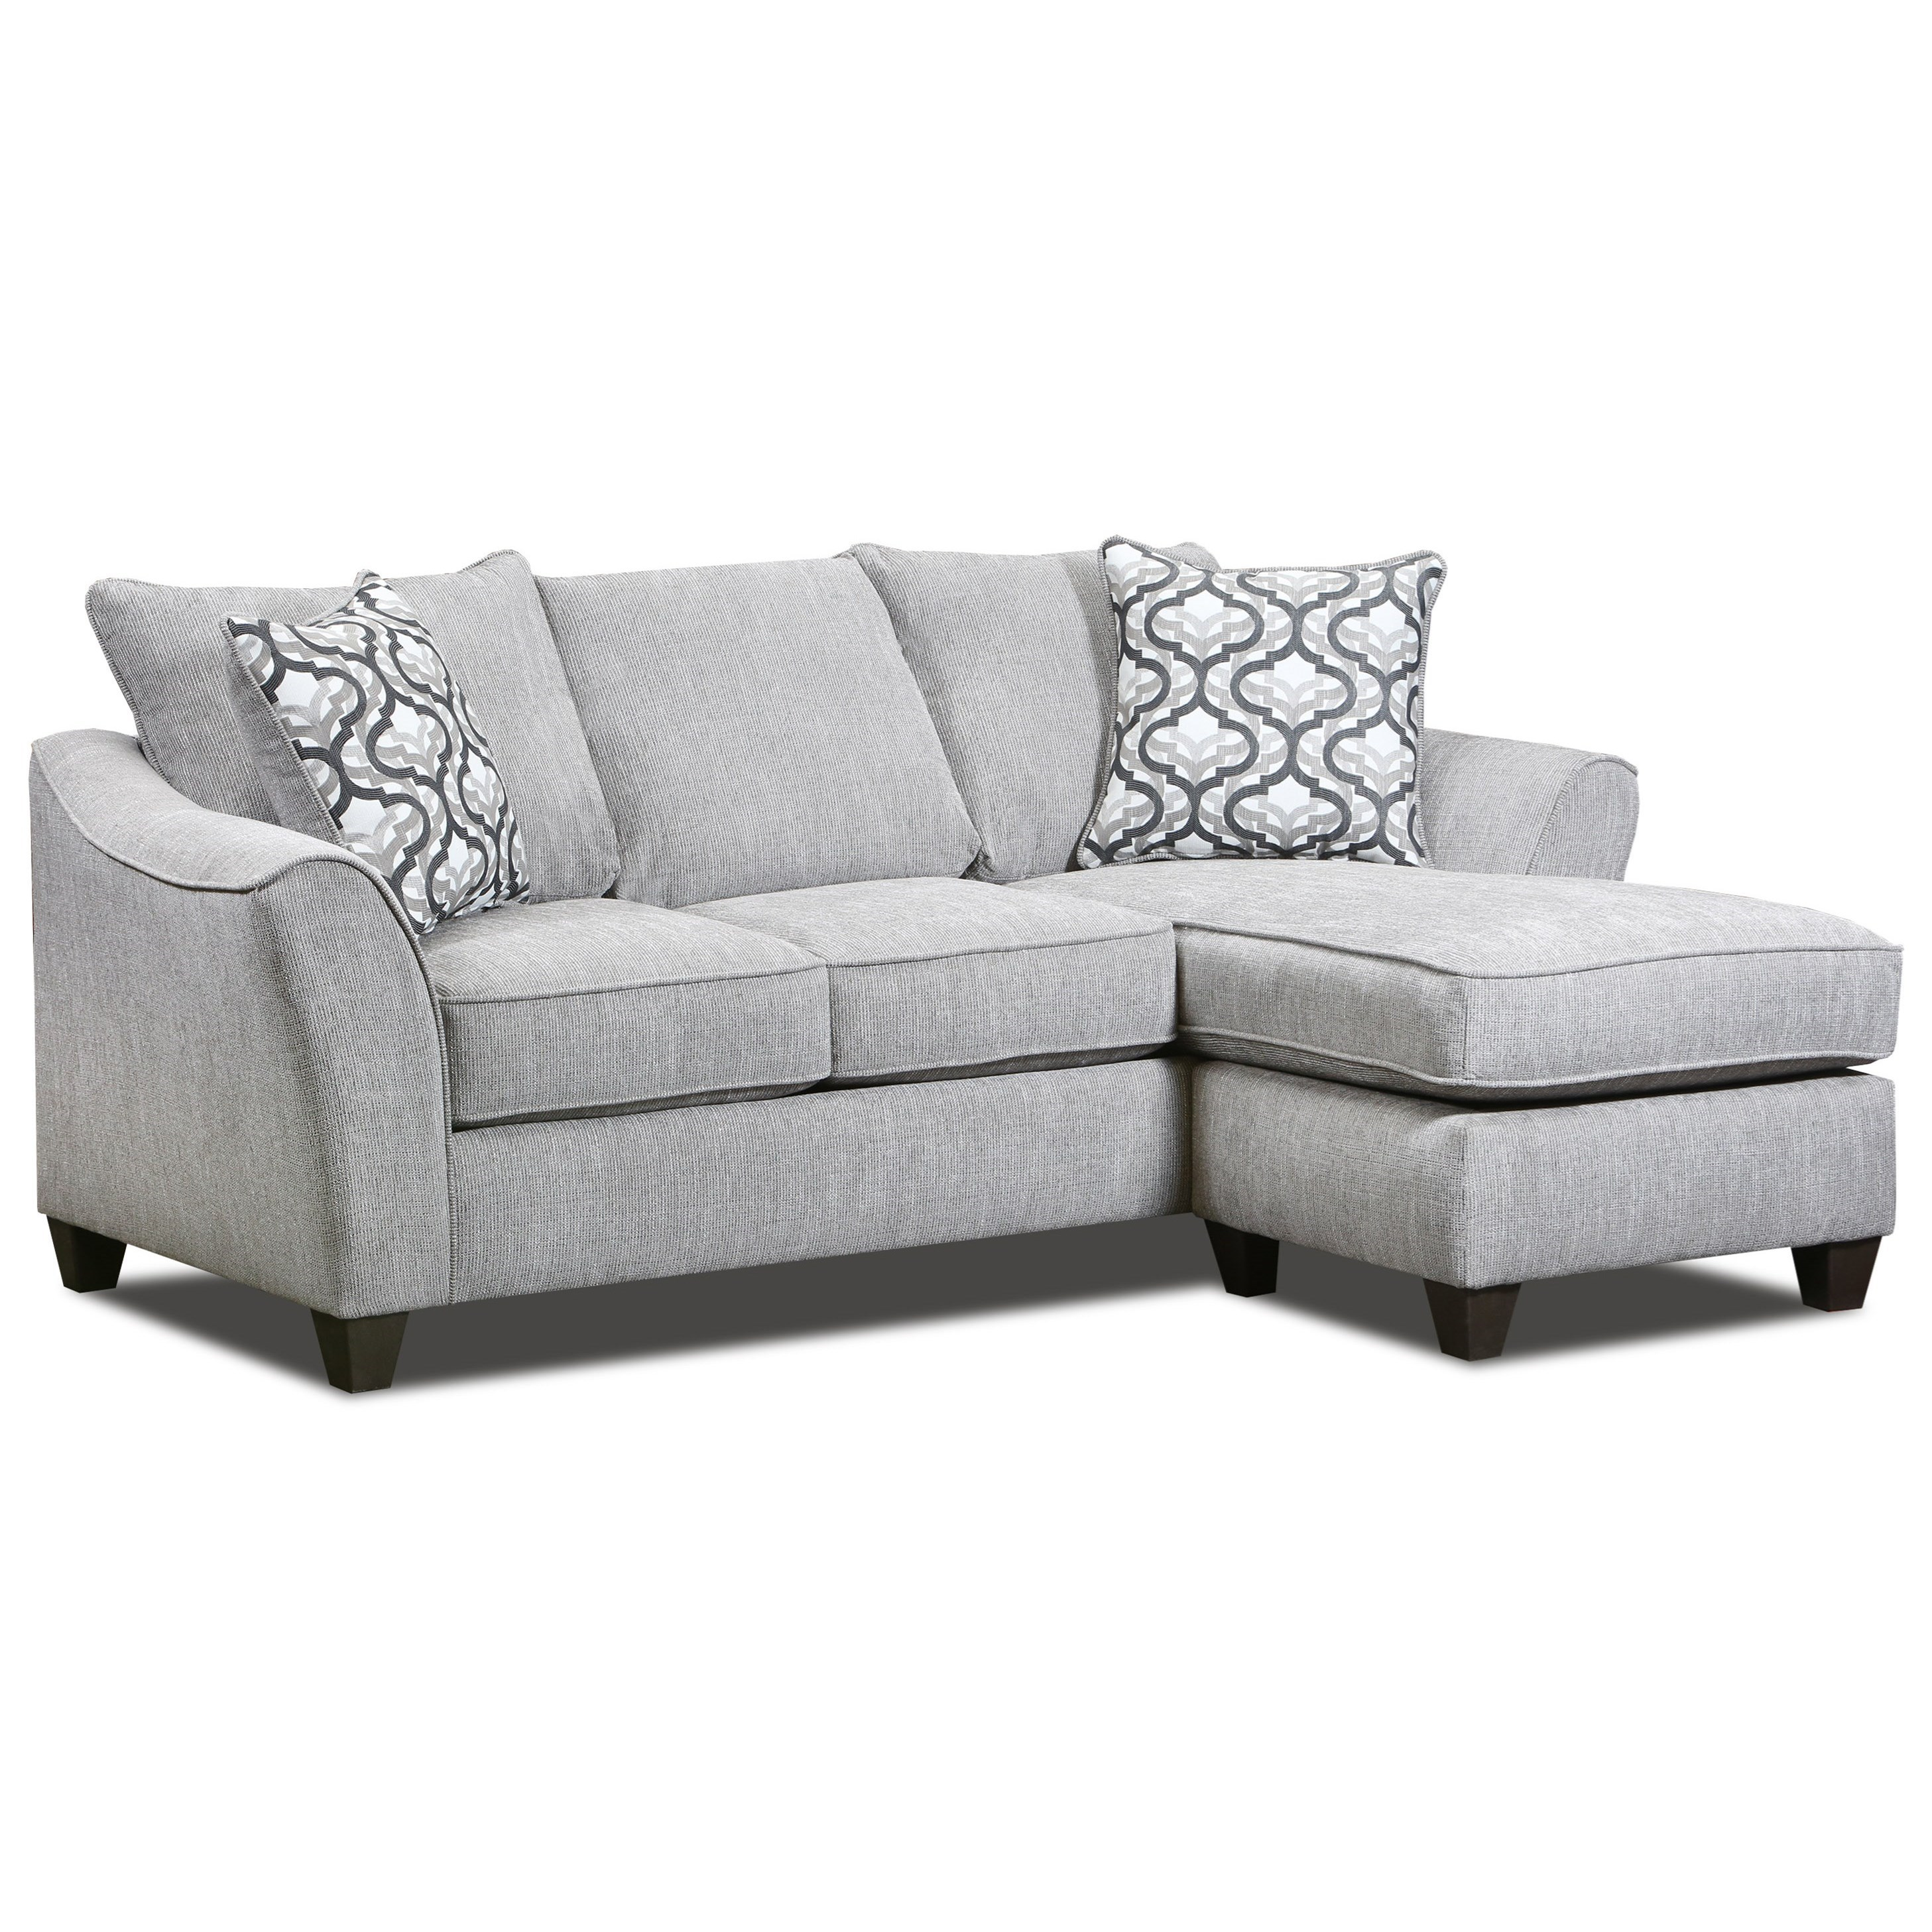 4550 Sofa Chaise by Peak Living at Prime Brothers Furniture